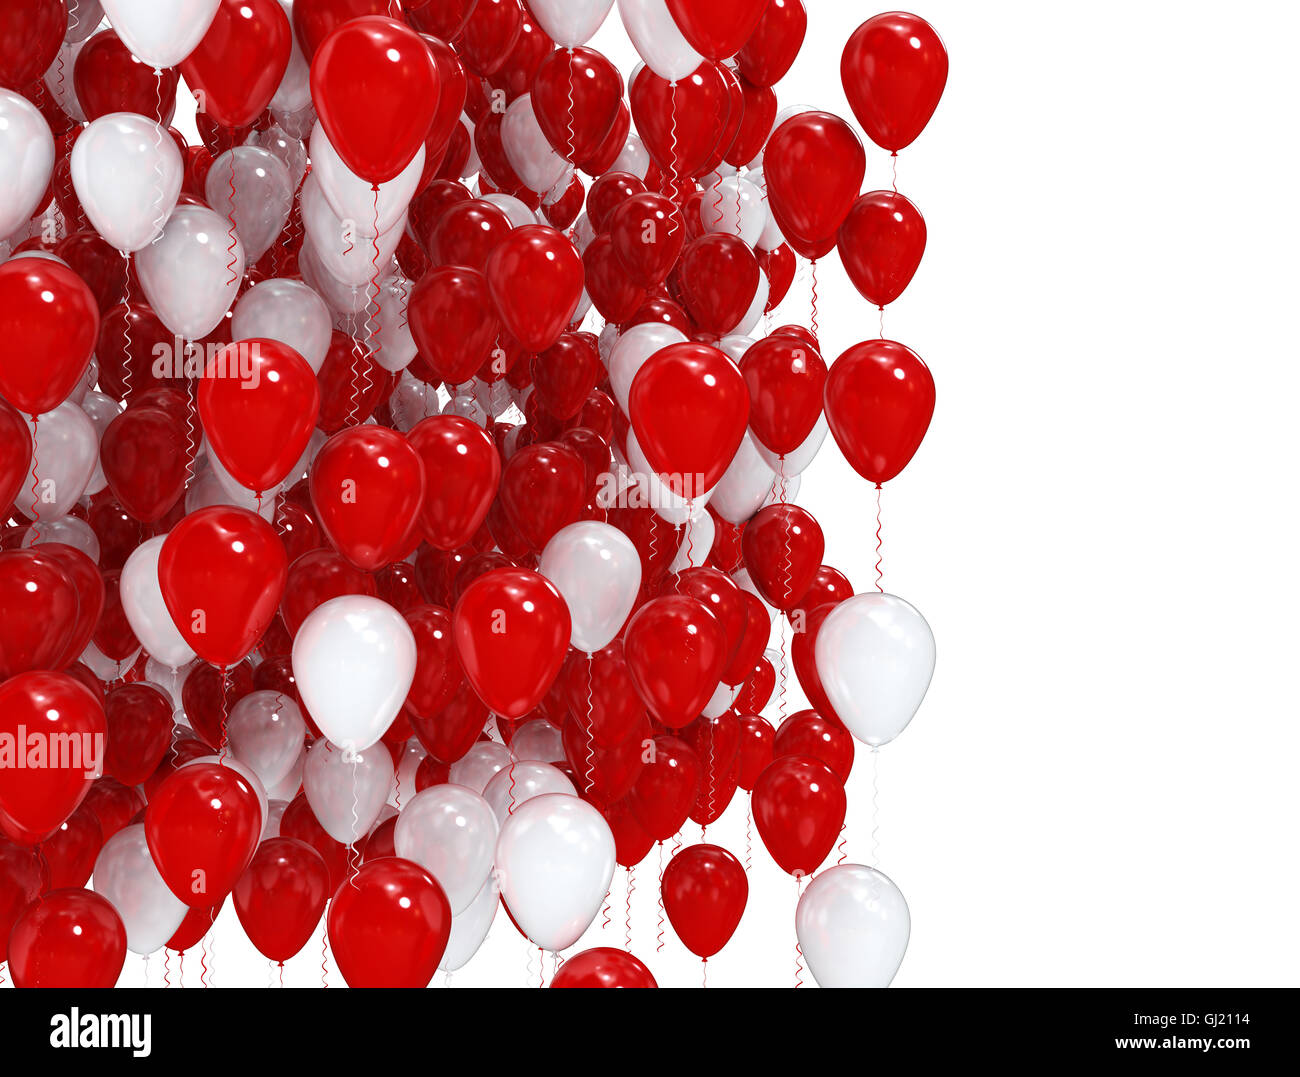 red and white party balloons isolated on white background stock